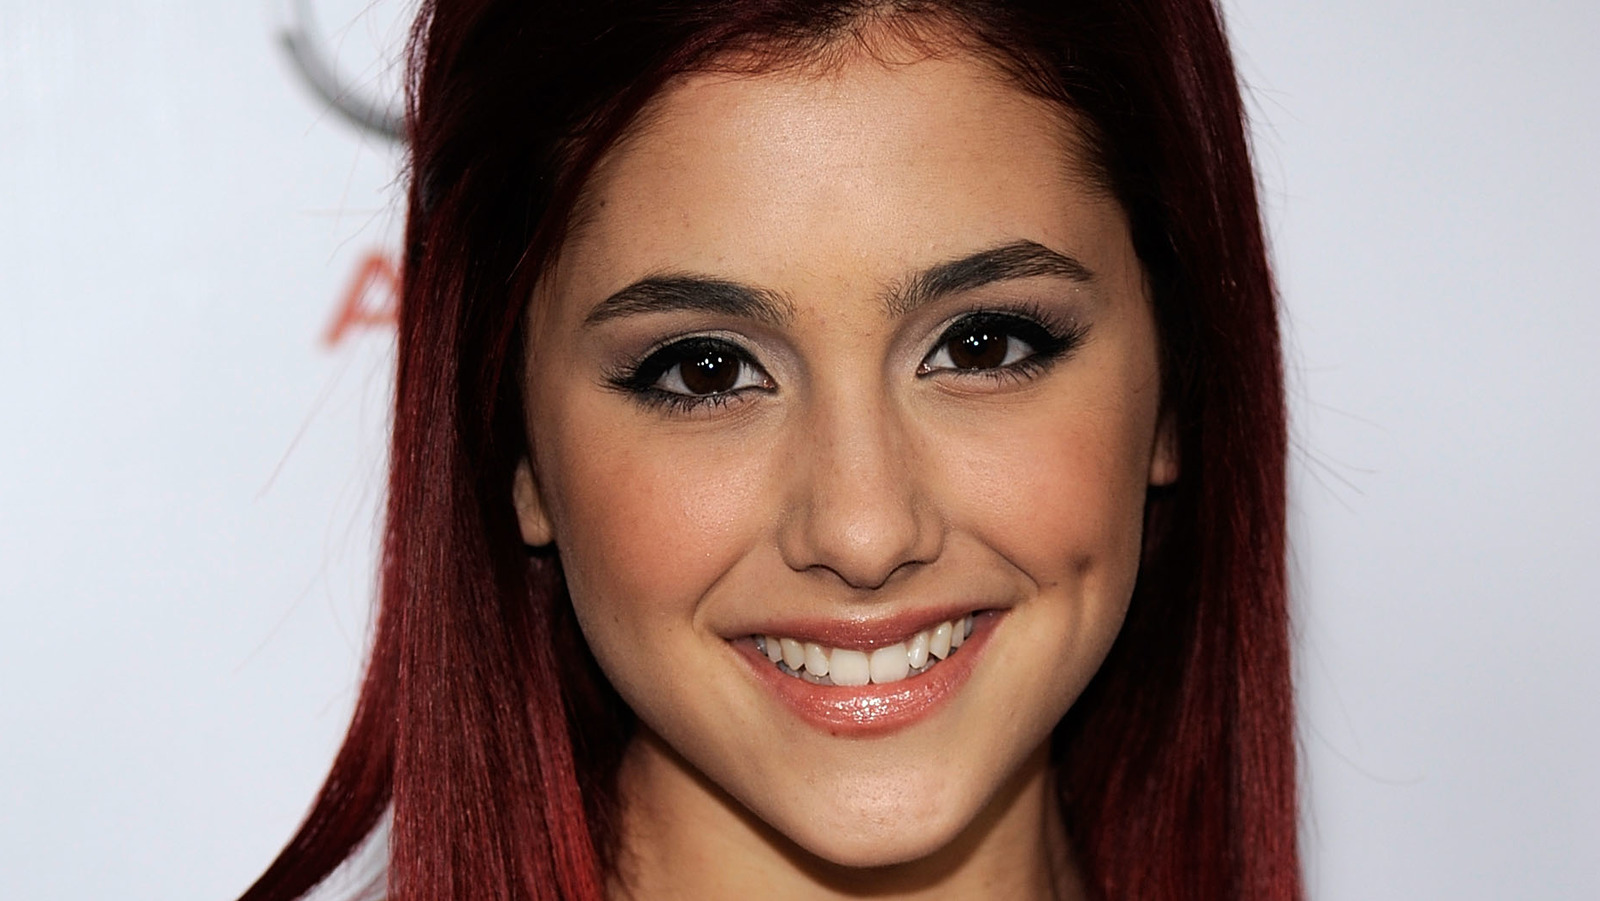 The Dramatic Transformation Of Ariana Grade From 16 To 27 Years Old.jpg